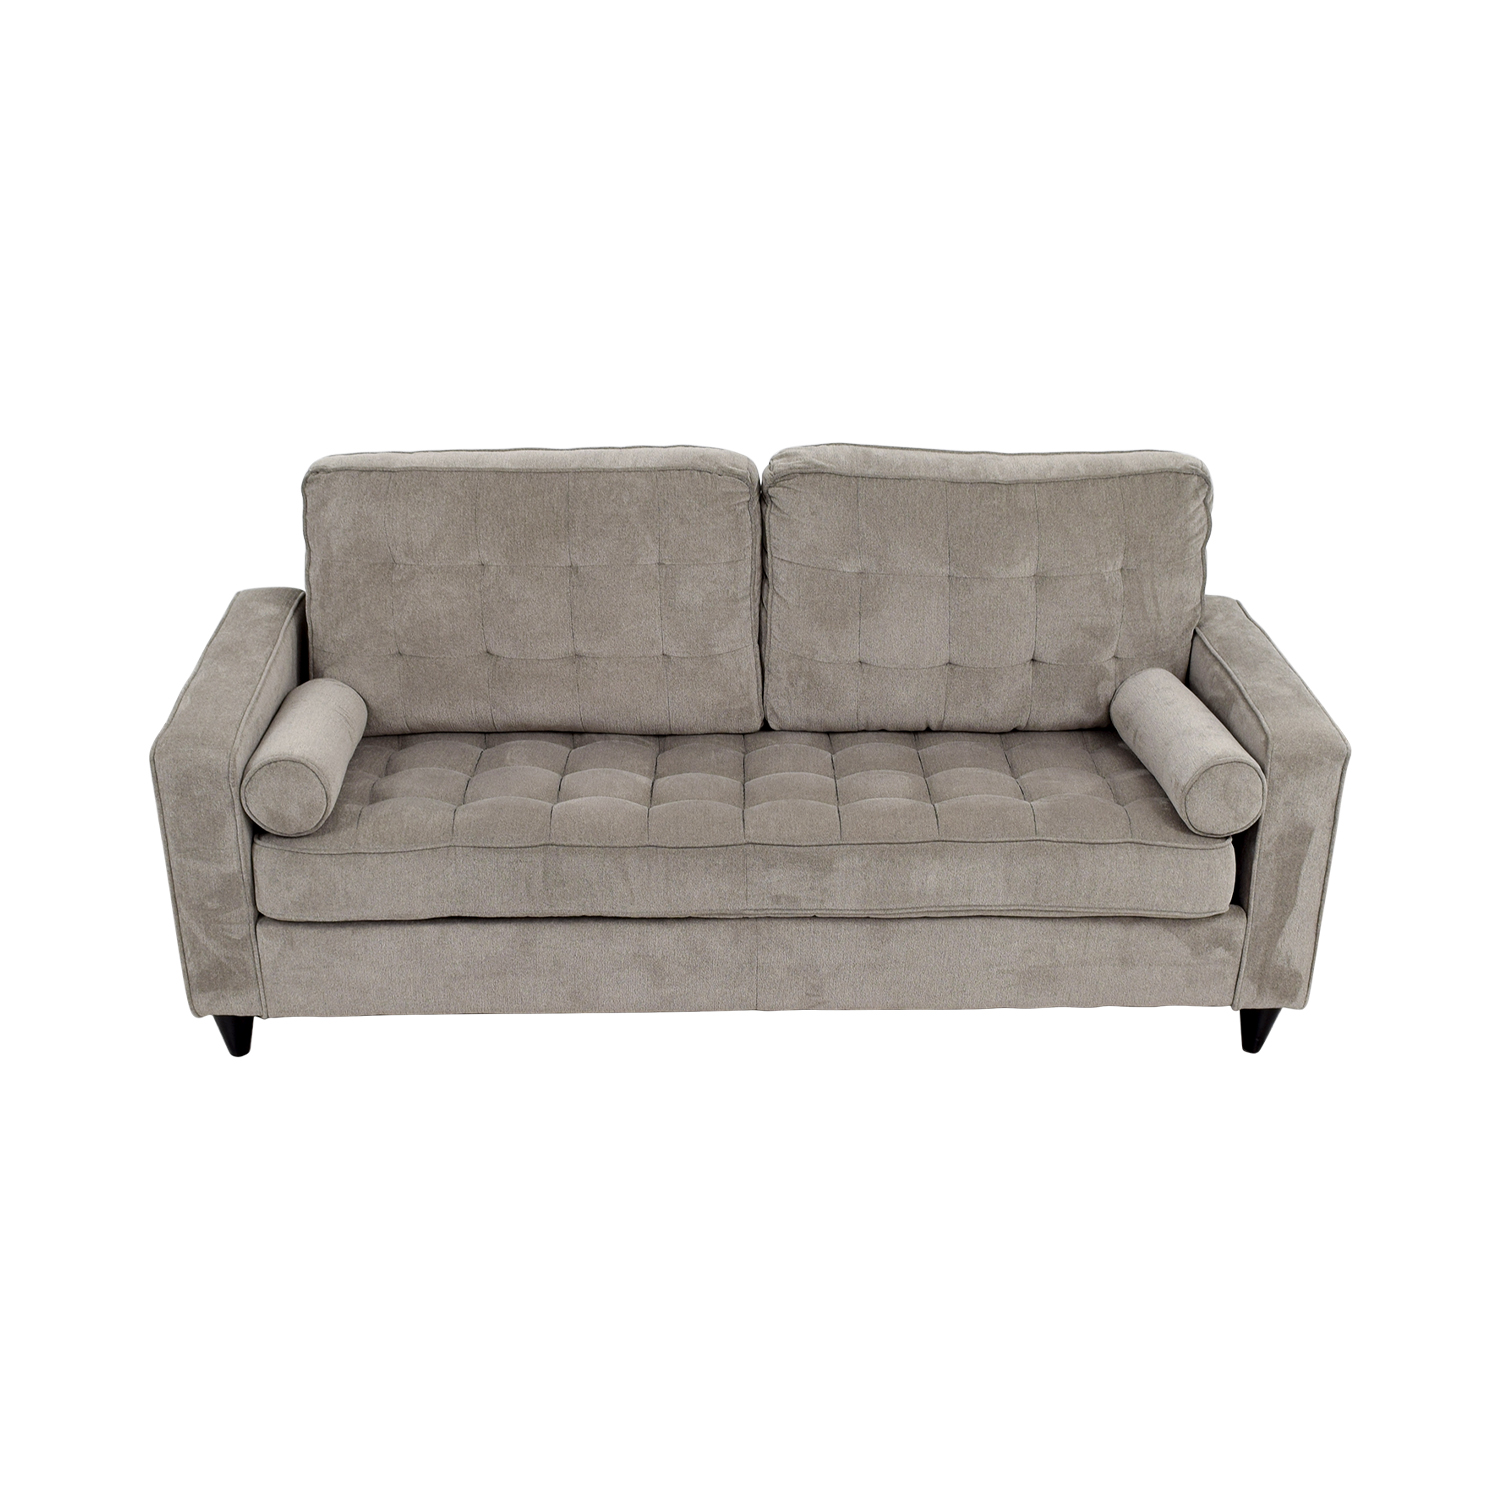 Corrigan Studio Corrigan Studio Christiana Gray Tufted Sofa Sofas